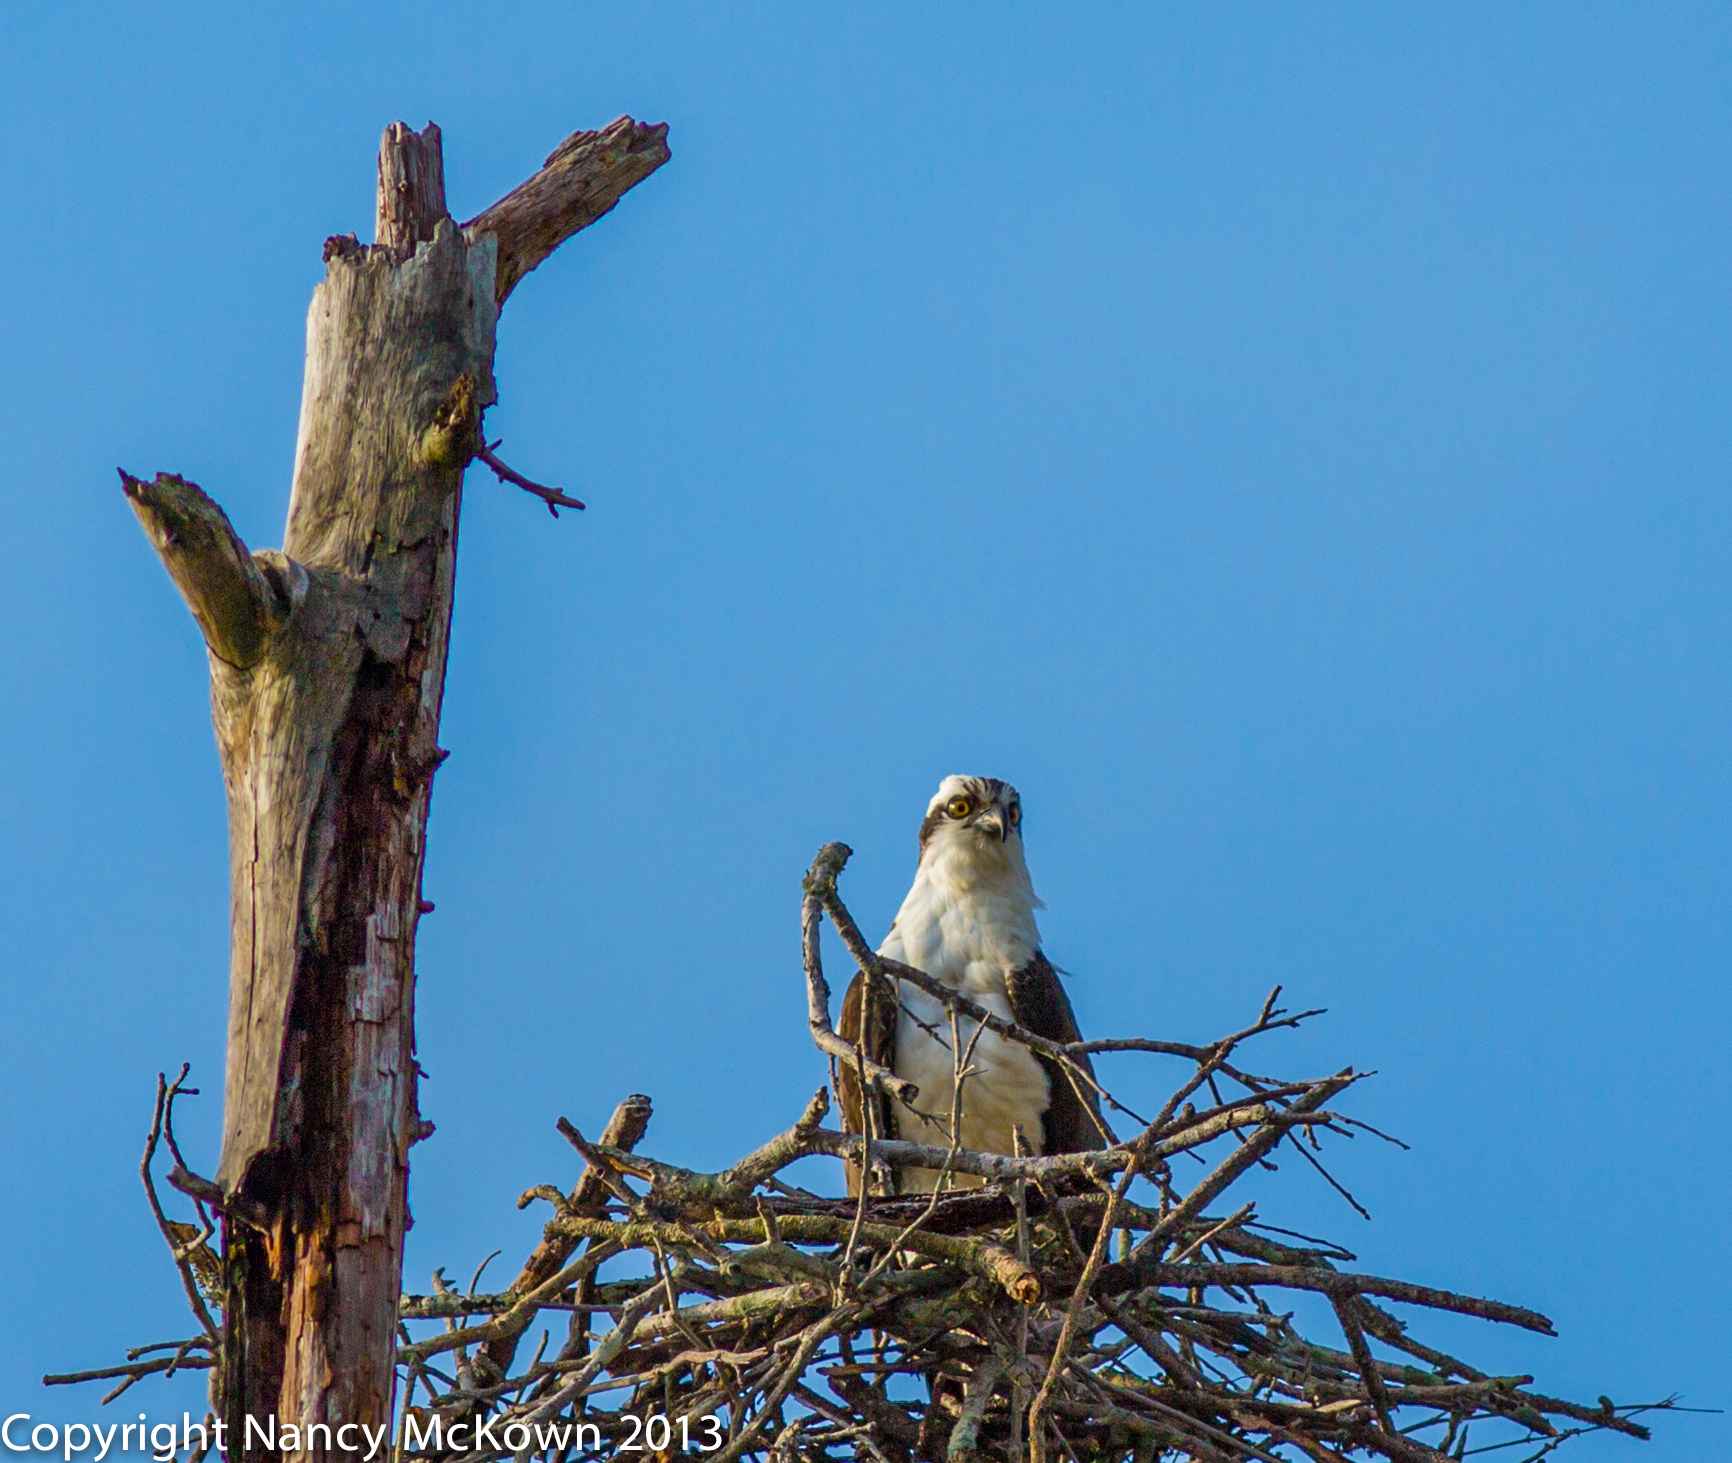 Photograph of Osprey Sitting in Nest